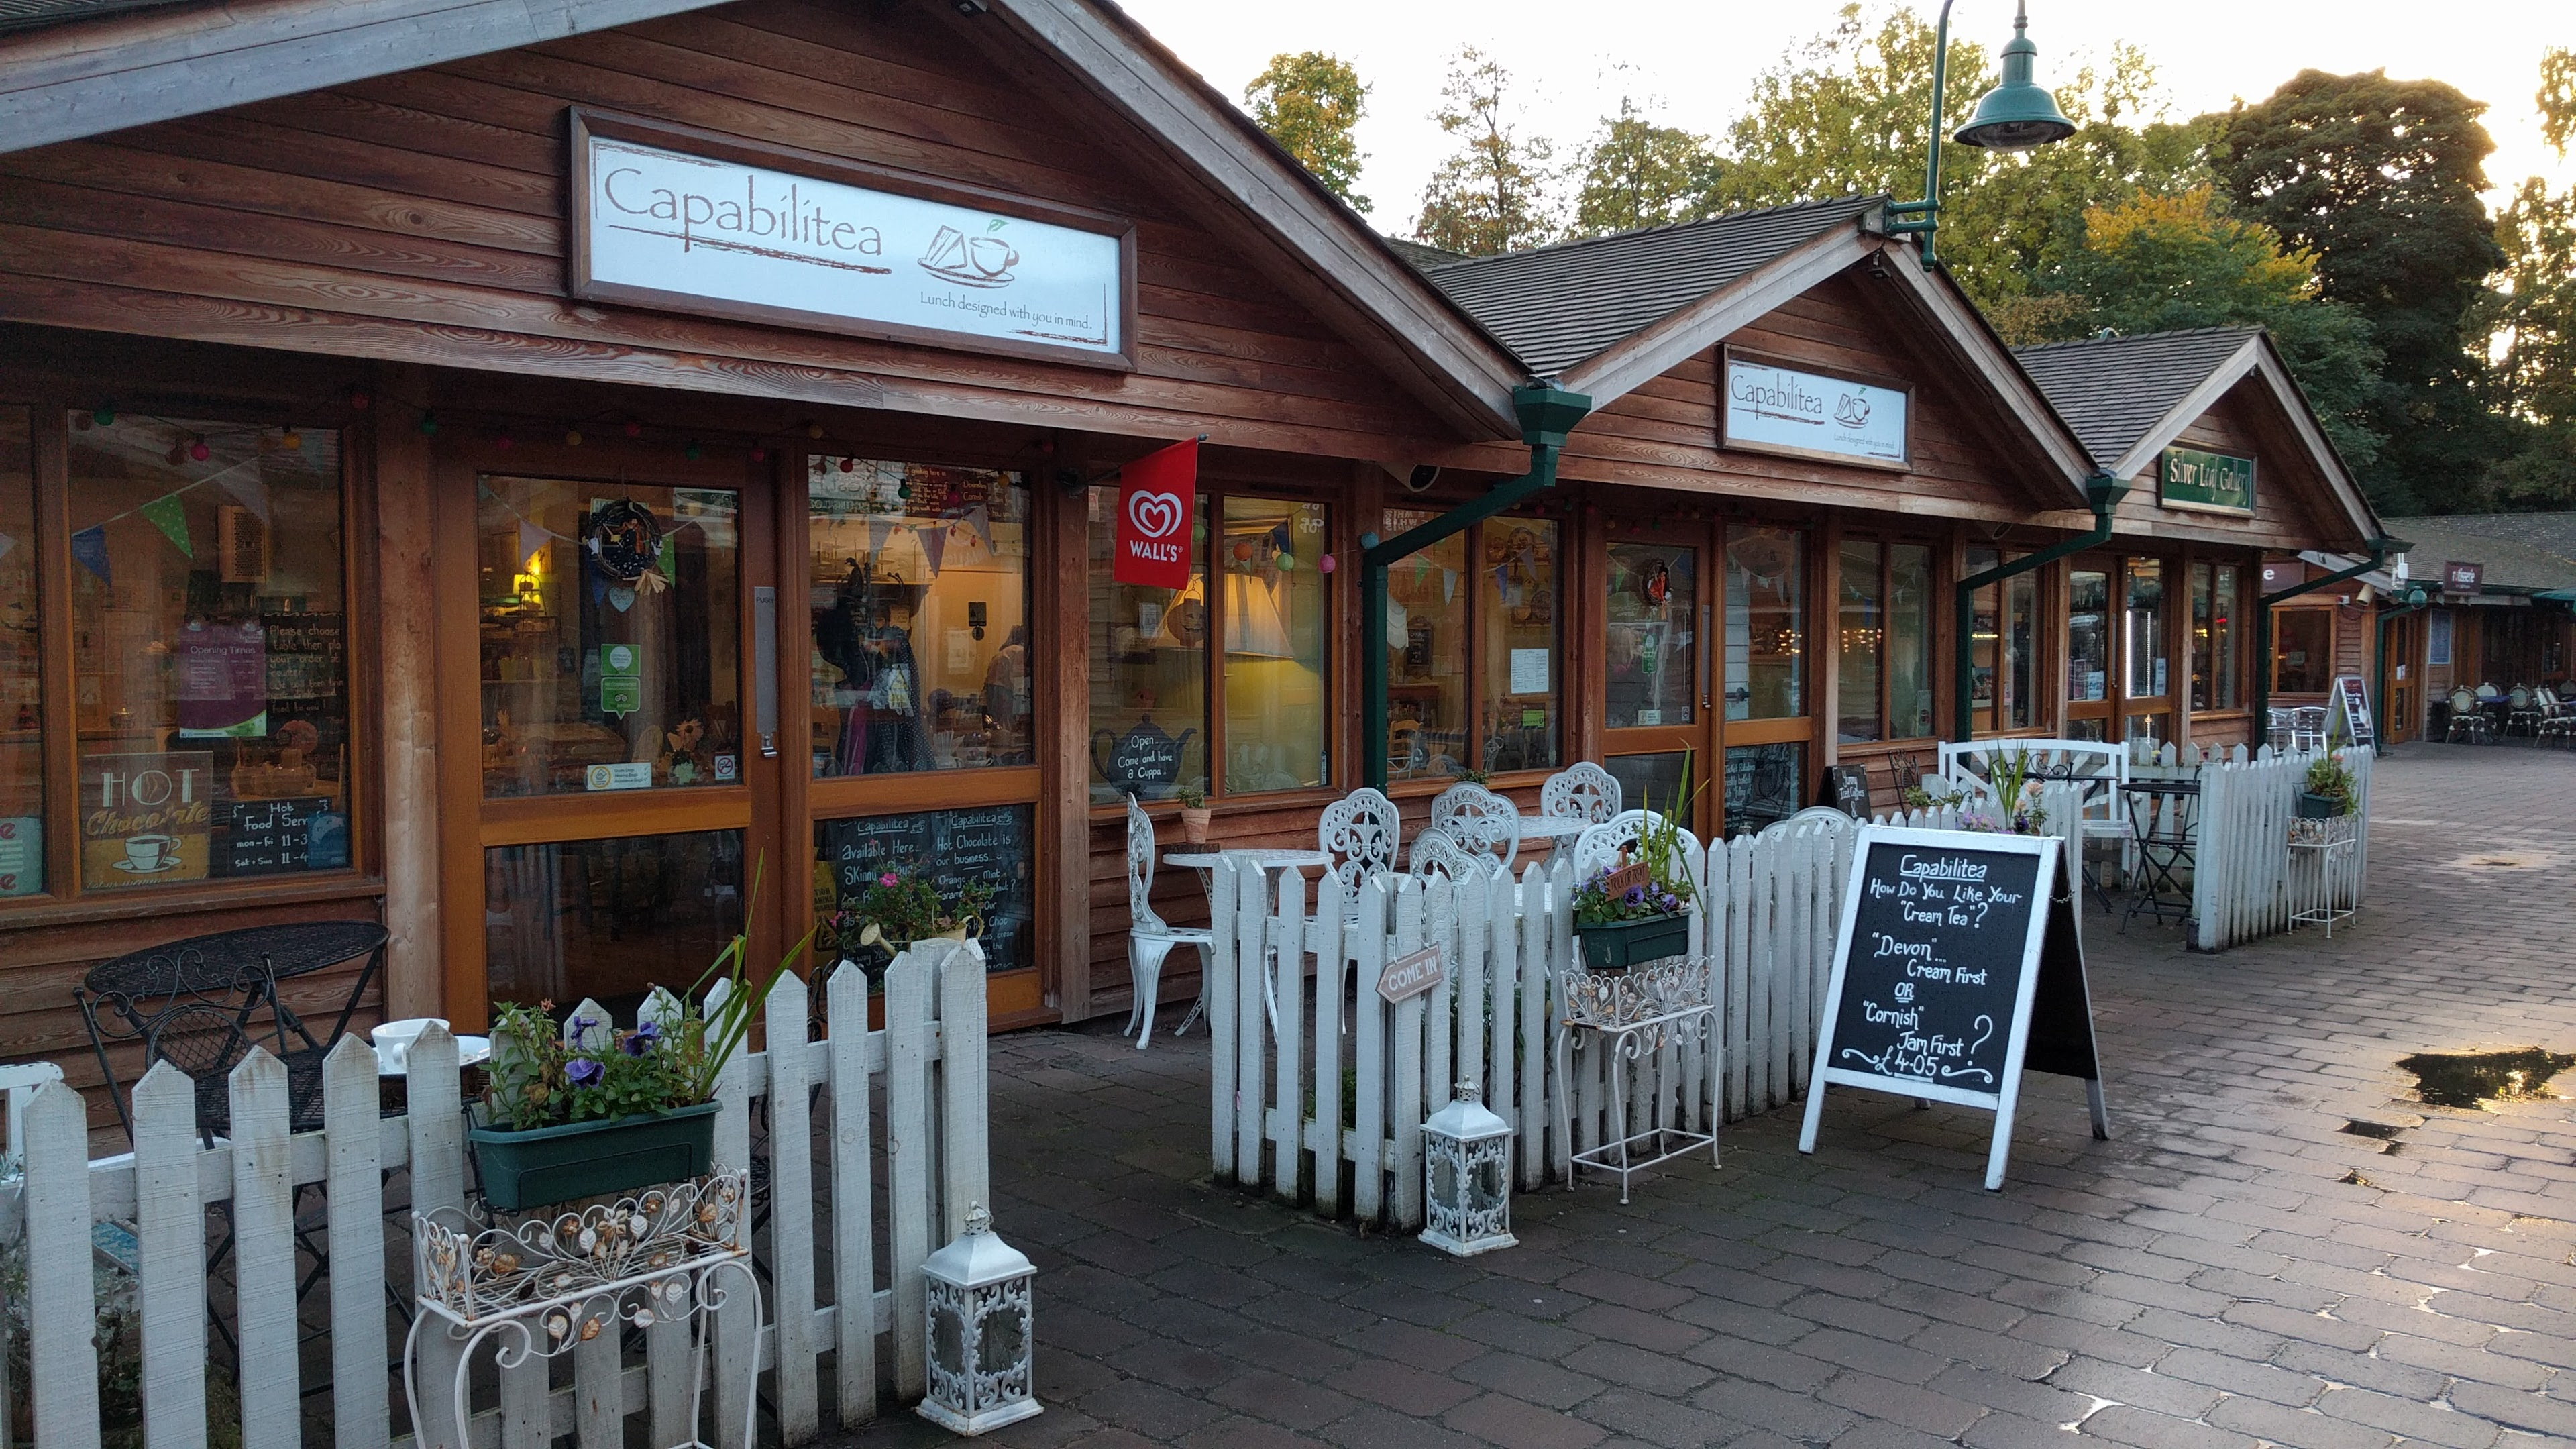 Capabilitea Tea Rooms, Trentham